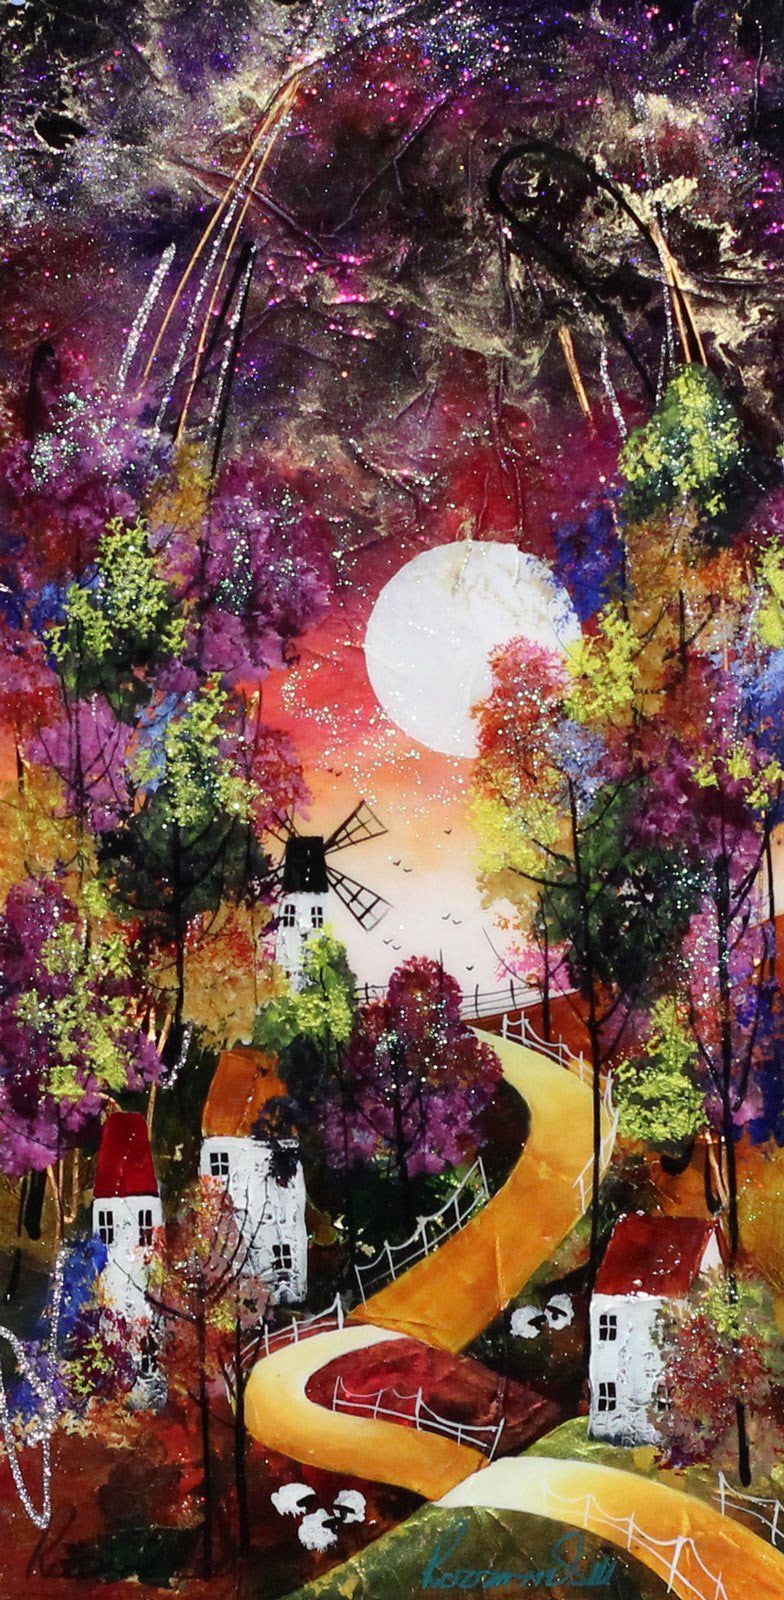 Golden Sky II - SOLD Rozanne Bell